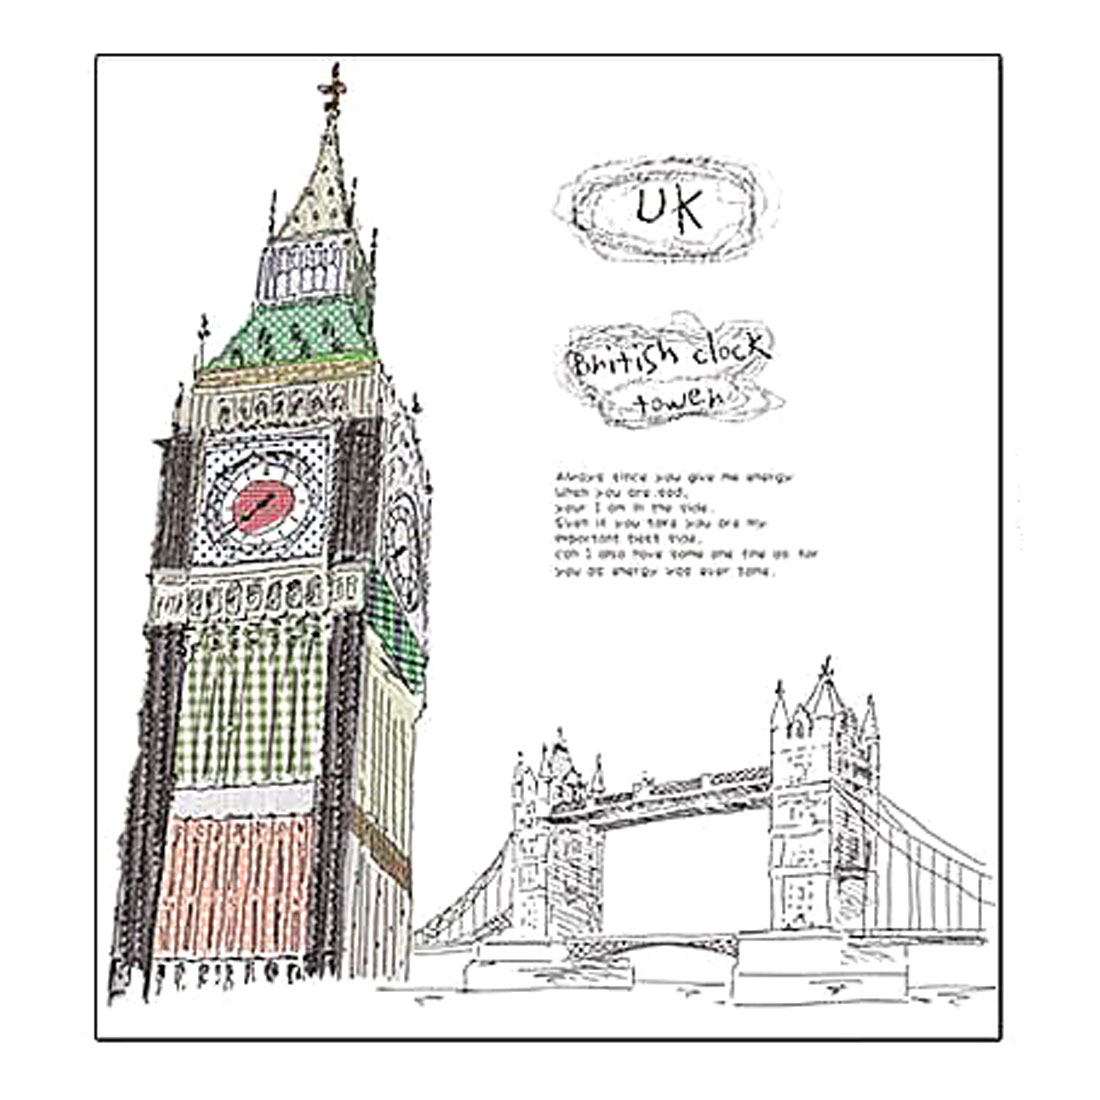 Living Room Detailing DIY Removable Brown Big Ben Wall Stickers 1m x 1m